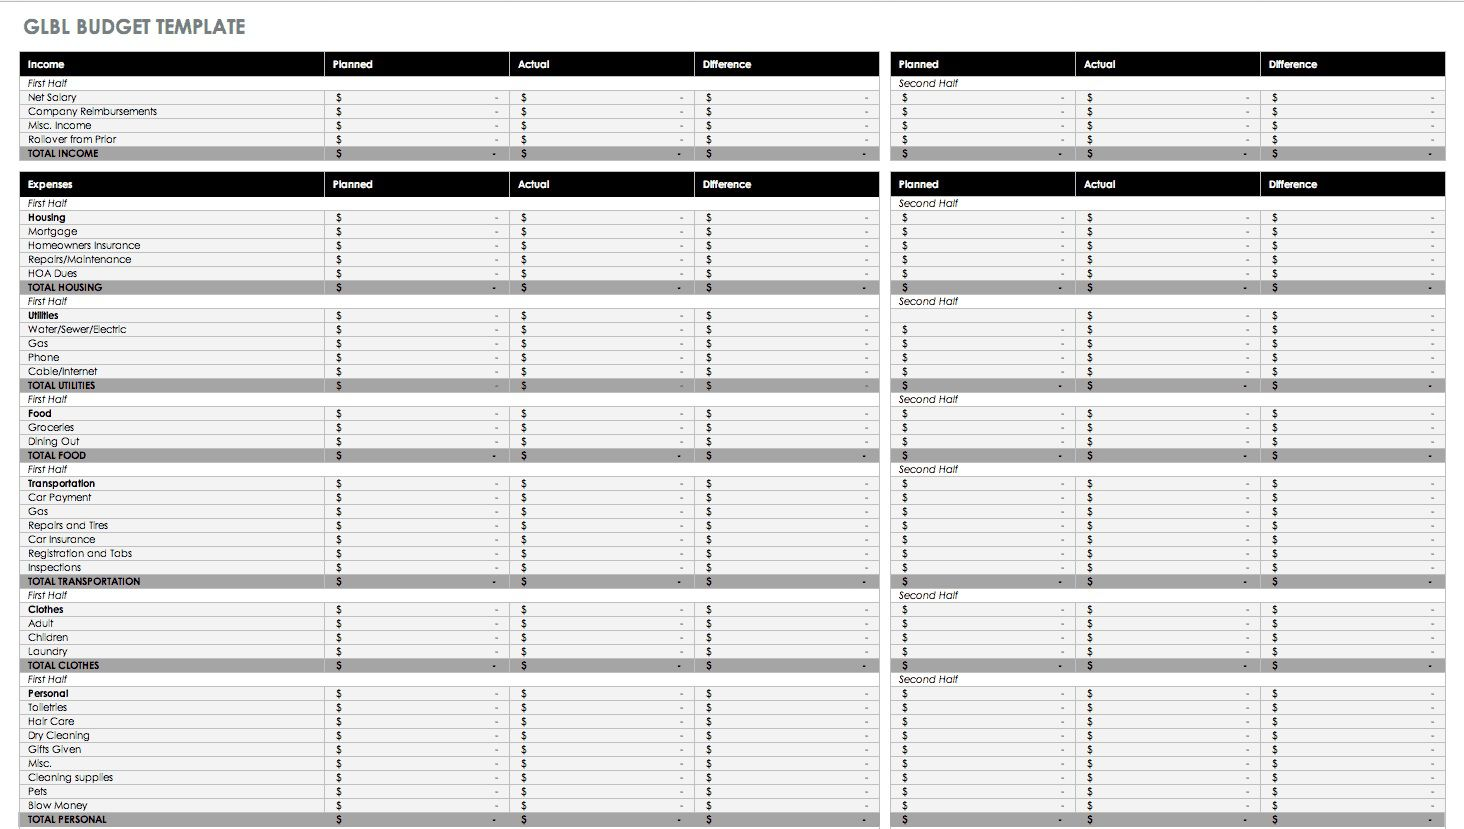 004 Frightening Blank Monthly Budget Worksheet High Definition  Worksheets Printable Free SpreadsheetFull